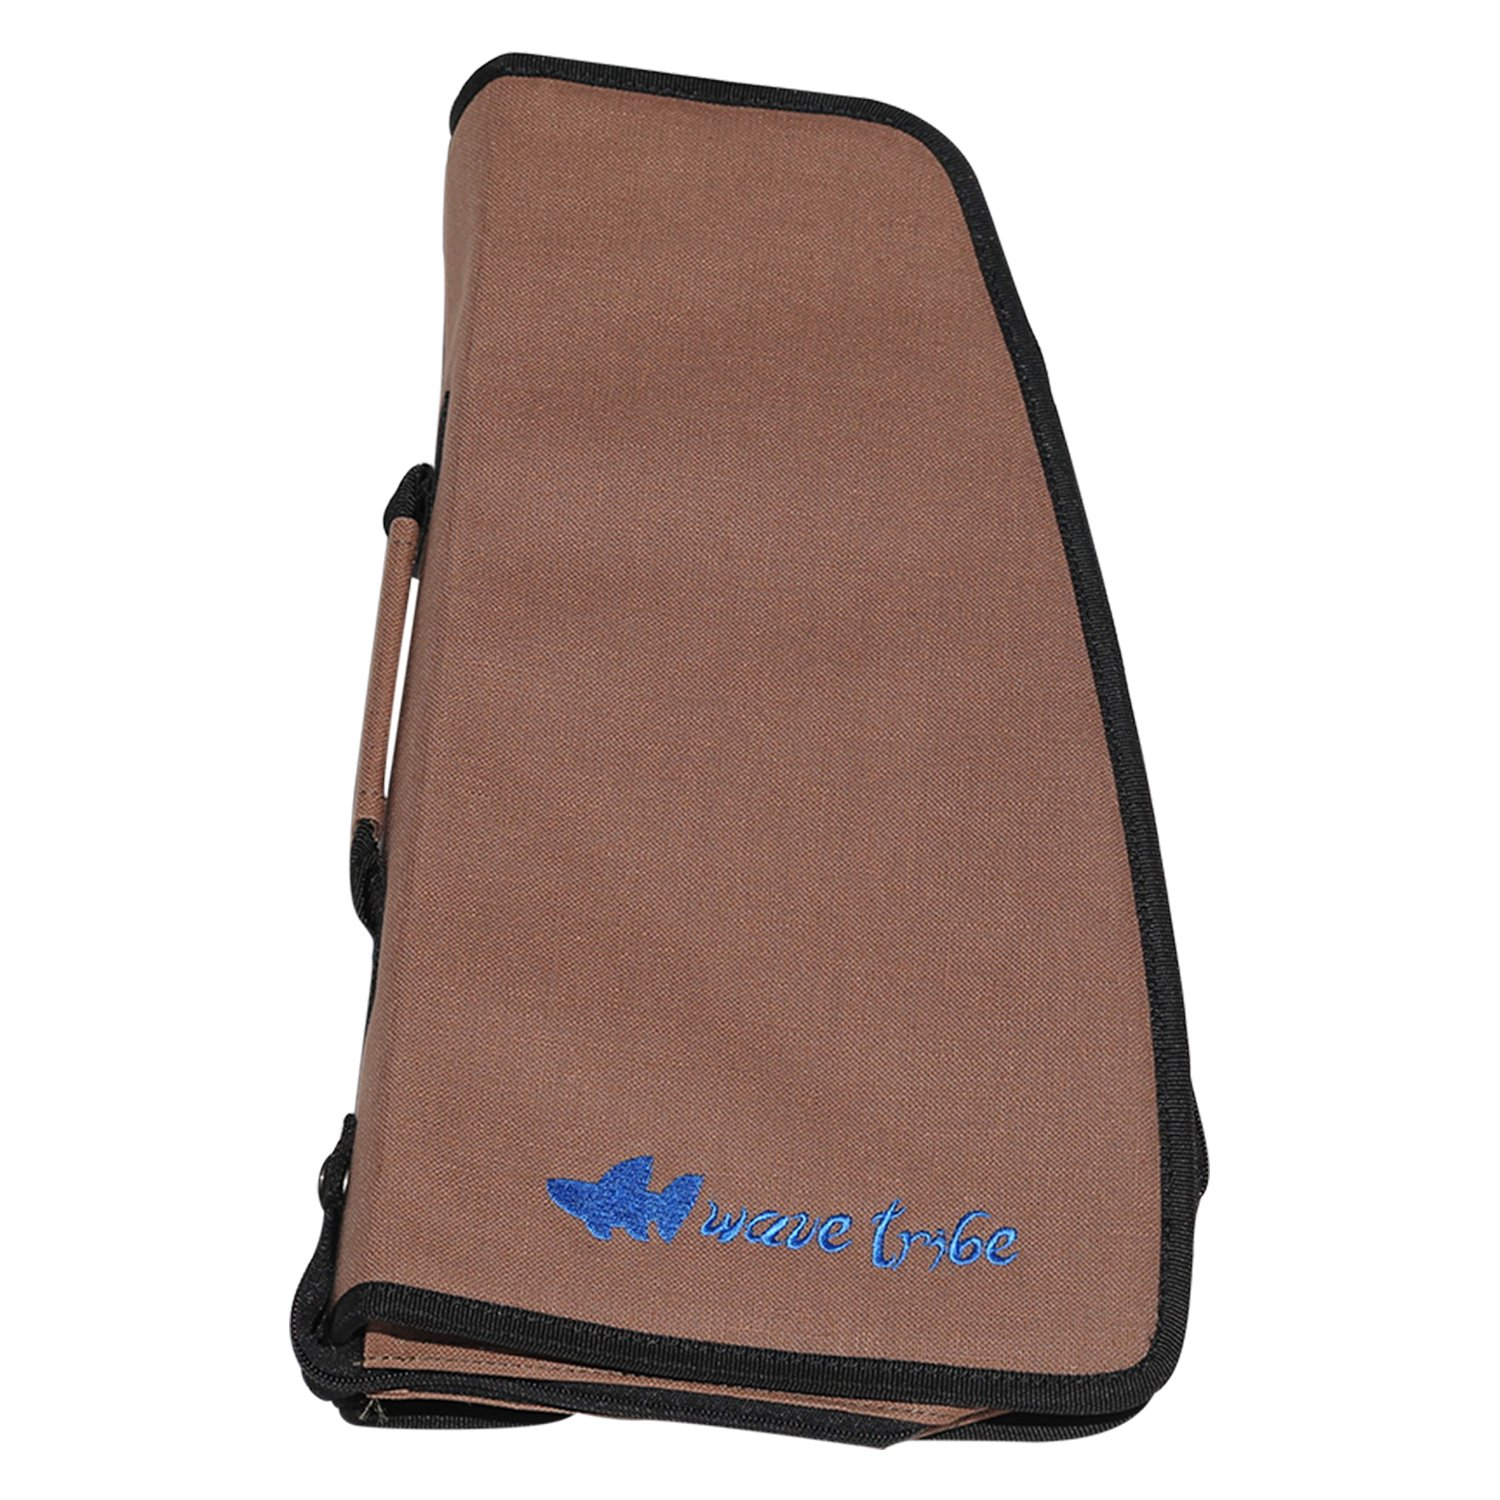 Surfboard Fin Wallet - Always Have Your Best Fins with You - Awesome Hemp Fin Holder & Organizer (Brown, Fits Shortboard & Longboard Fins)